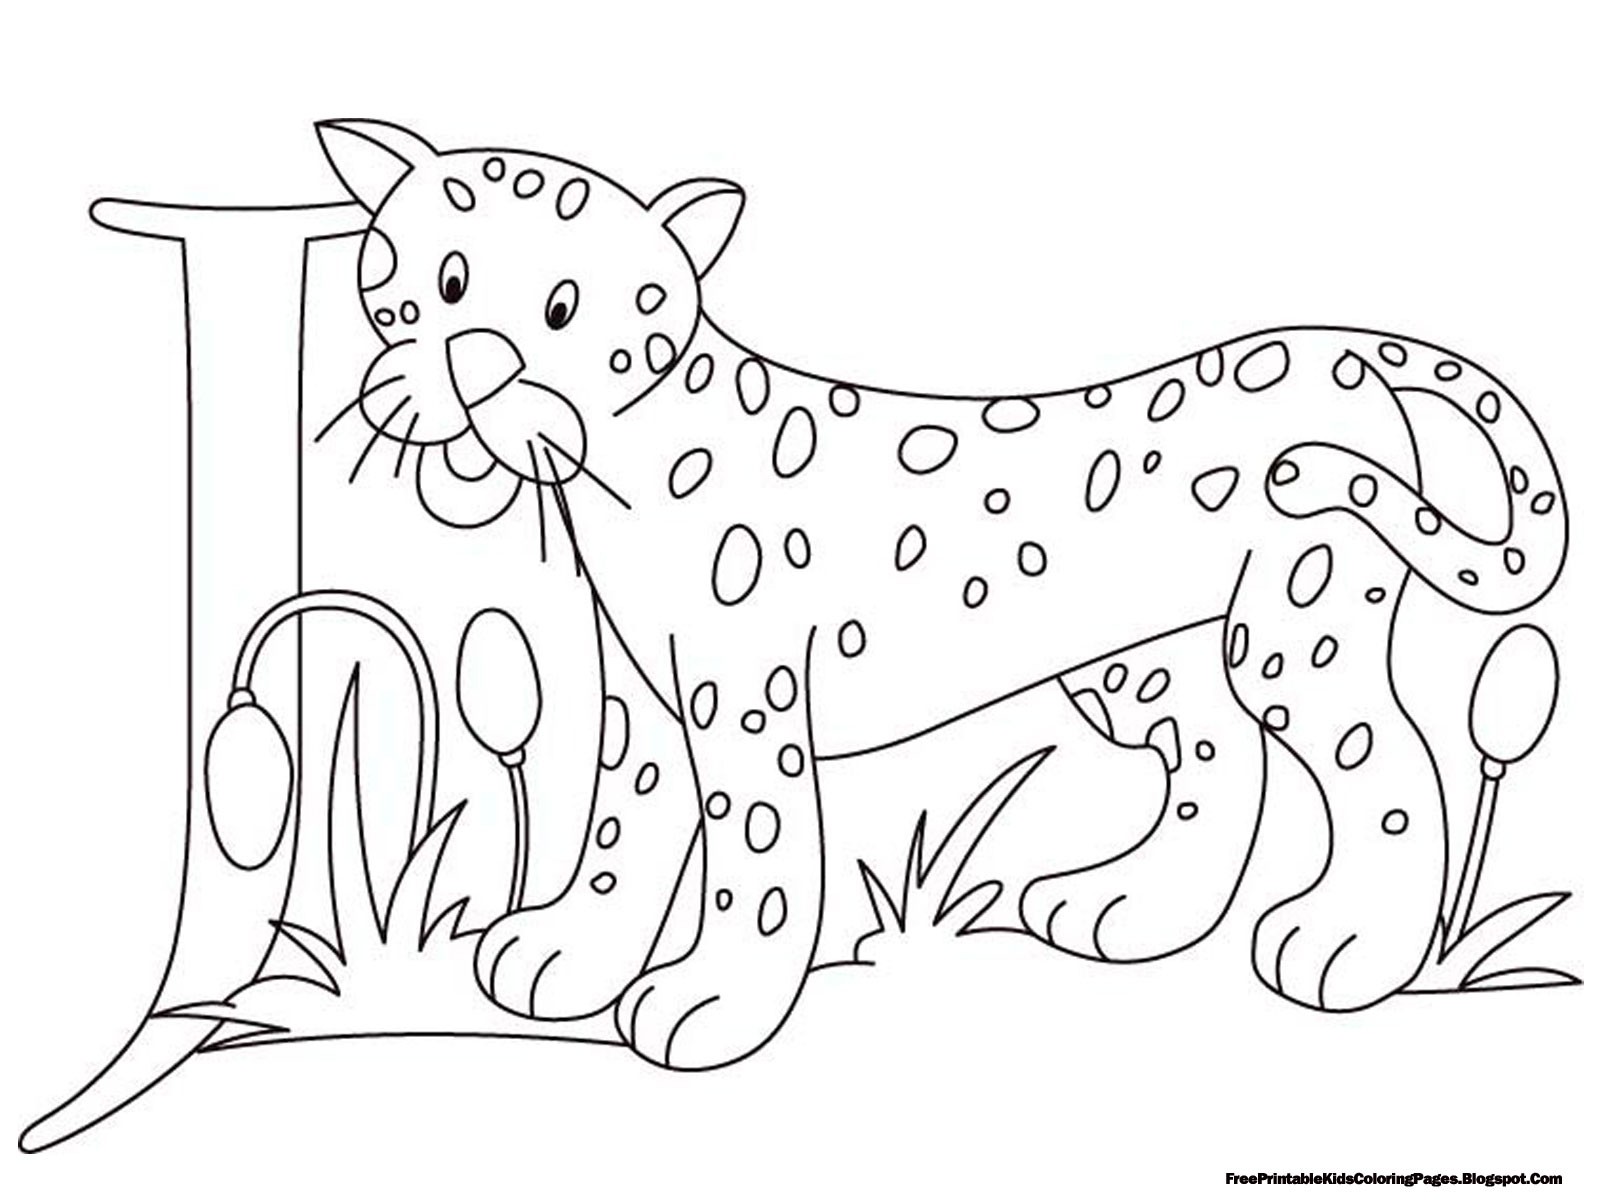 Jaguar Alphabet Coloring Pages Printable